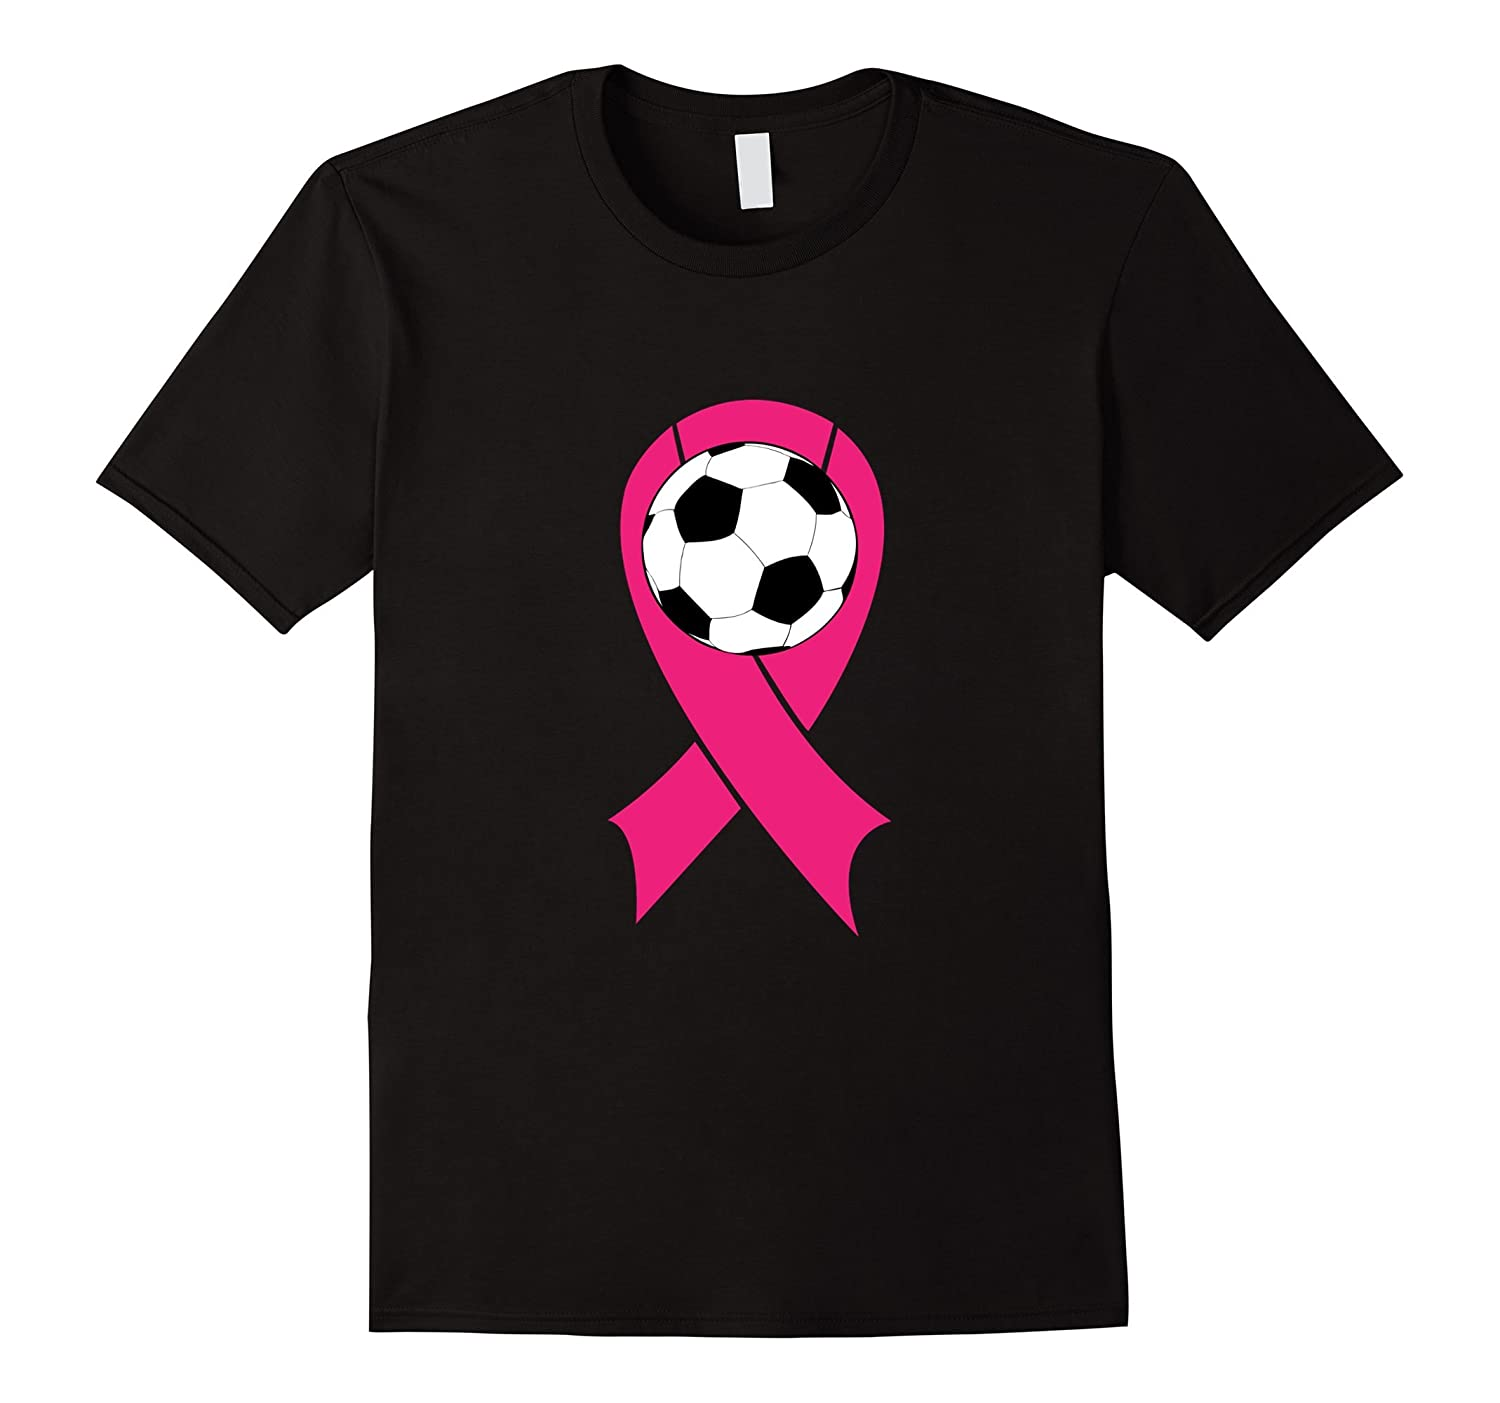 Breast Cancer Awareness Pink Ribbon Soccer Ball Team Shirt-T-Shirt